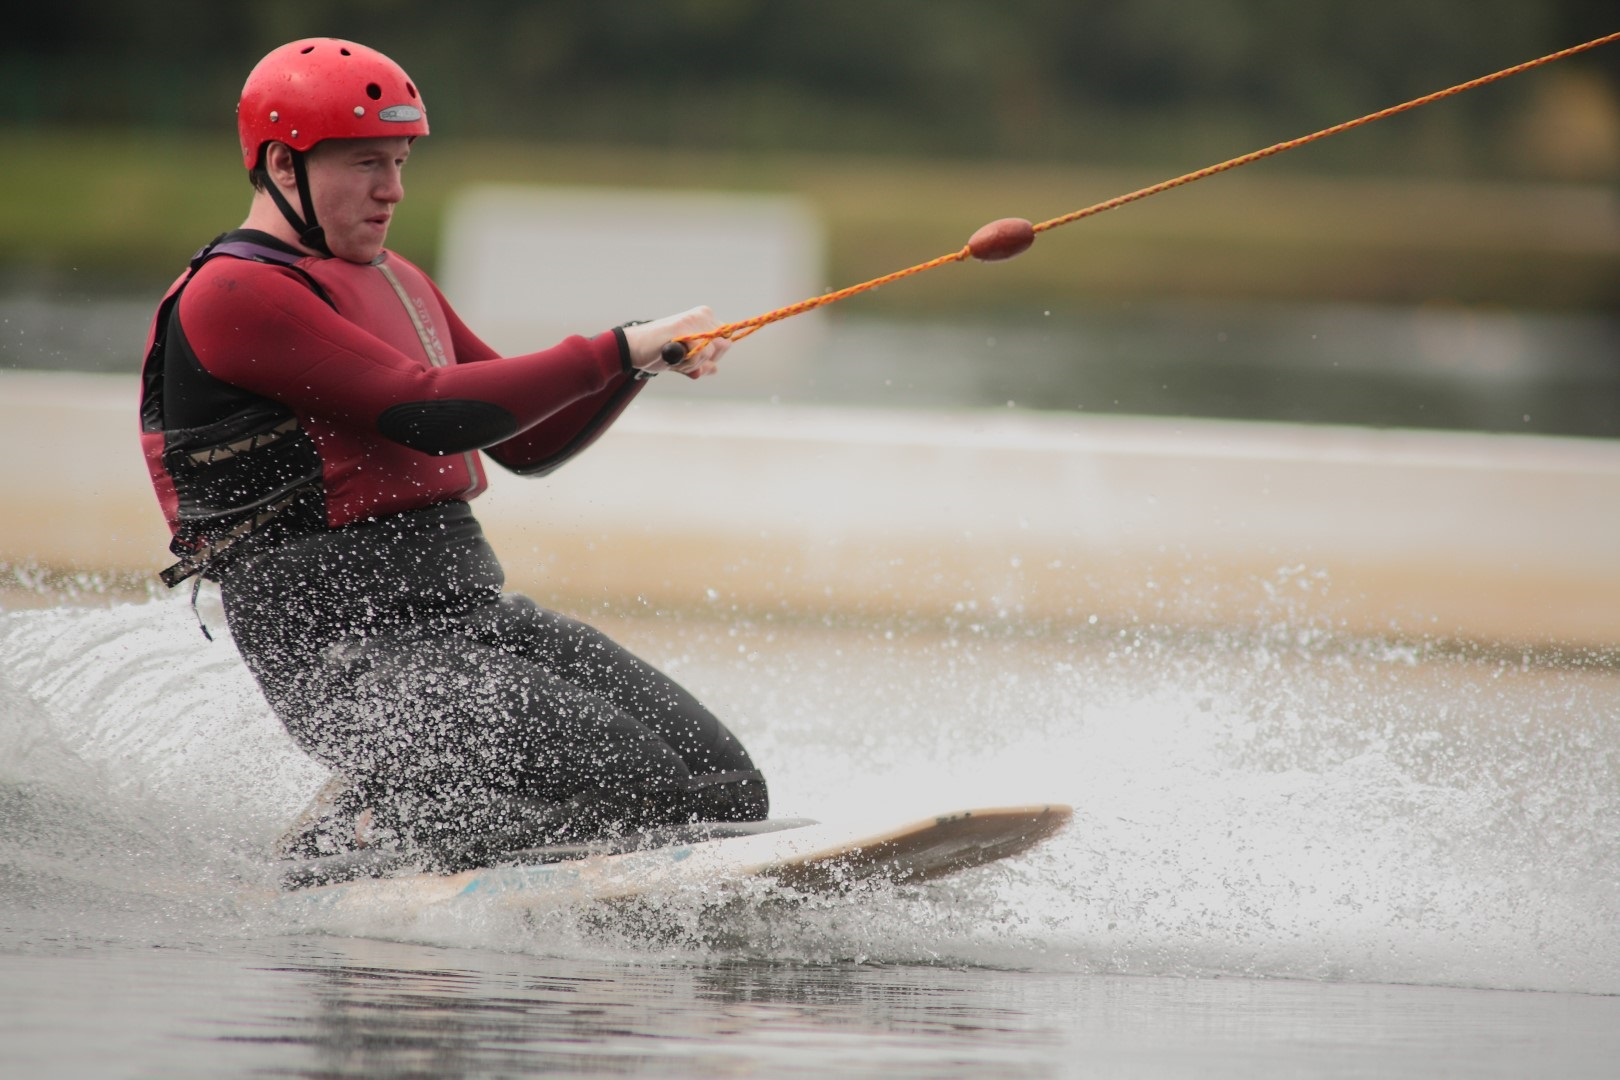 wakeboarding at holme pierrepont country park